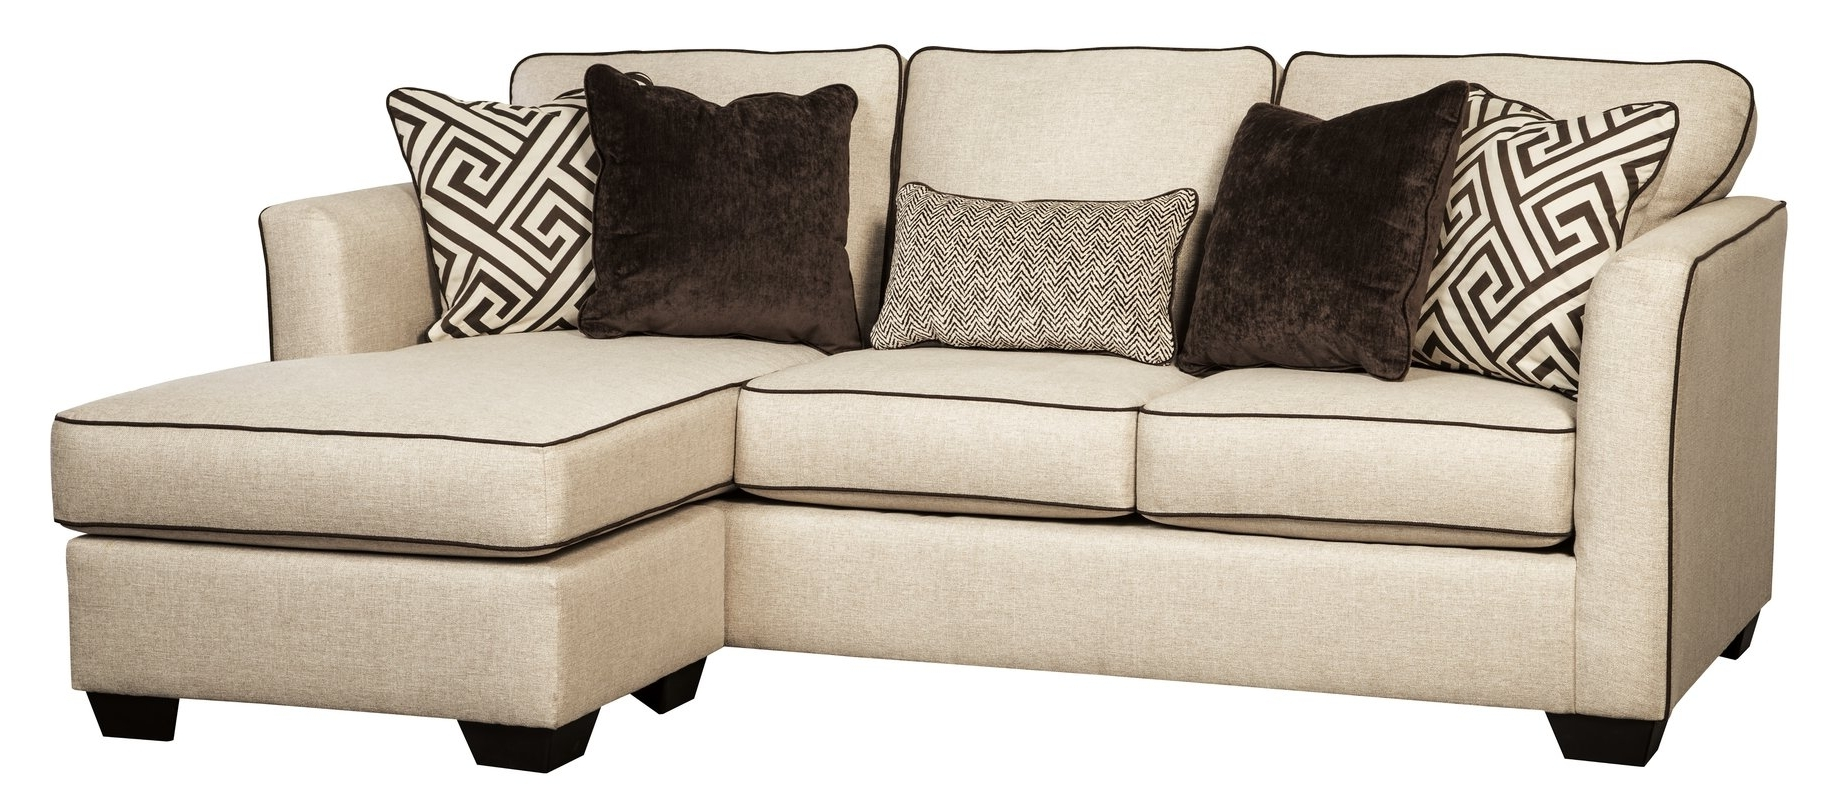 Benchcraft Carlinworth Sofa Chaise Sleeper & Reviews (View 2 of 15)